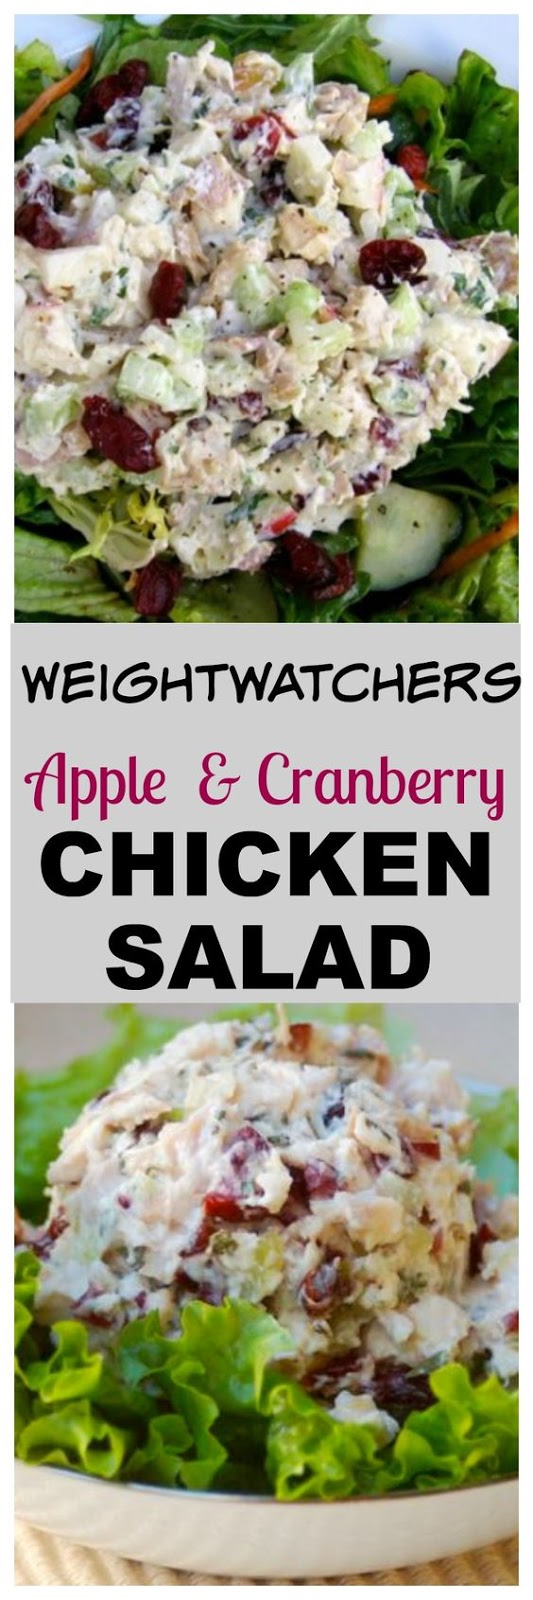 Leftover rotisserie chicken, apples, celery, and dried cranberries in a light and creamy dressing,this easy healthy chicken salad with apples and cranberries is a lunchtime favorite.